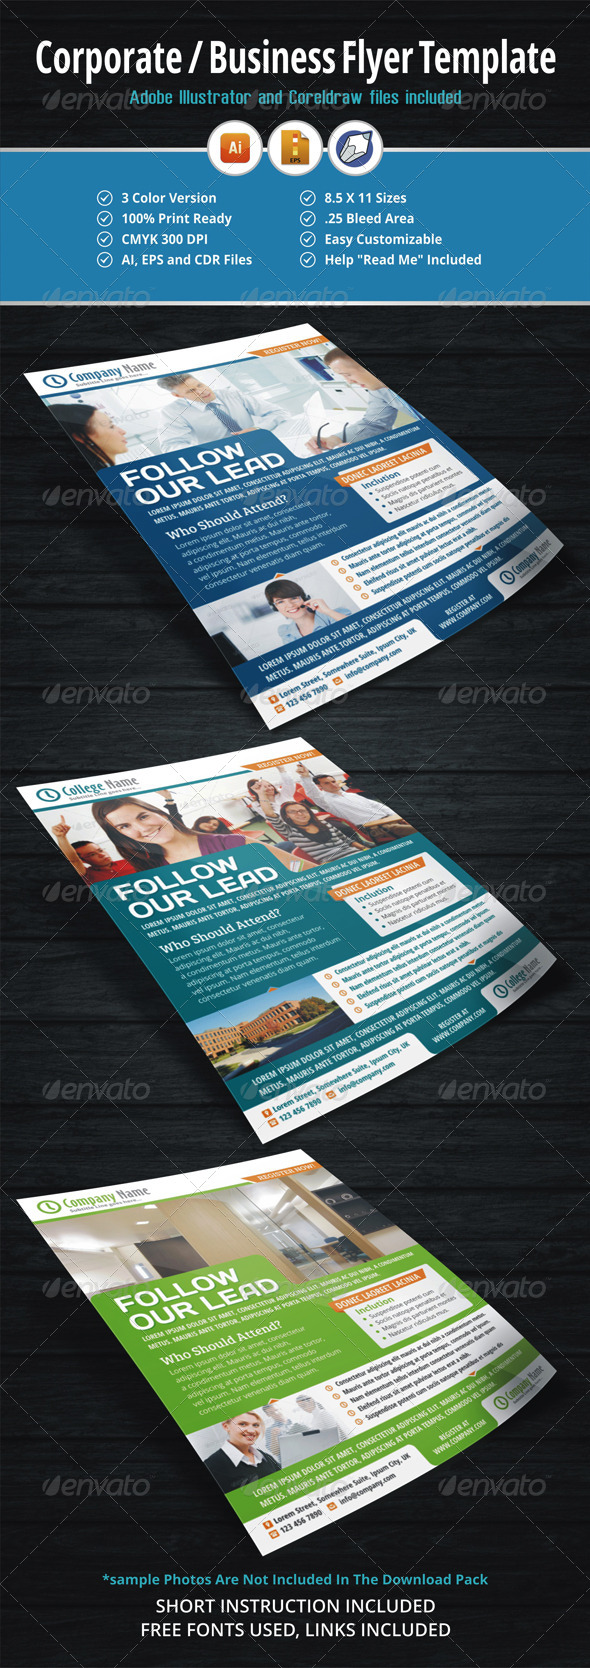 GraphicRiver Corporate Business Flyer Template 5598083